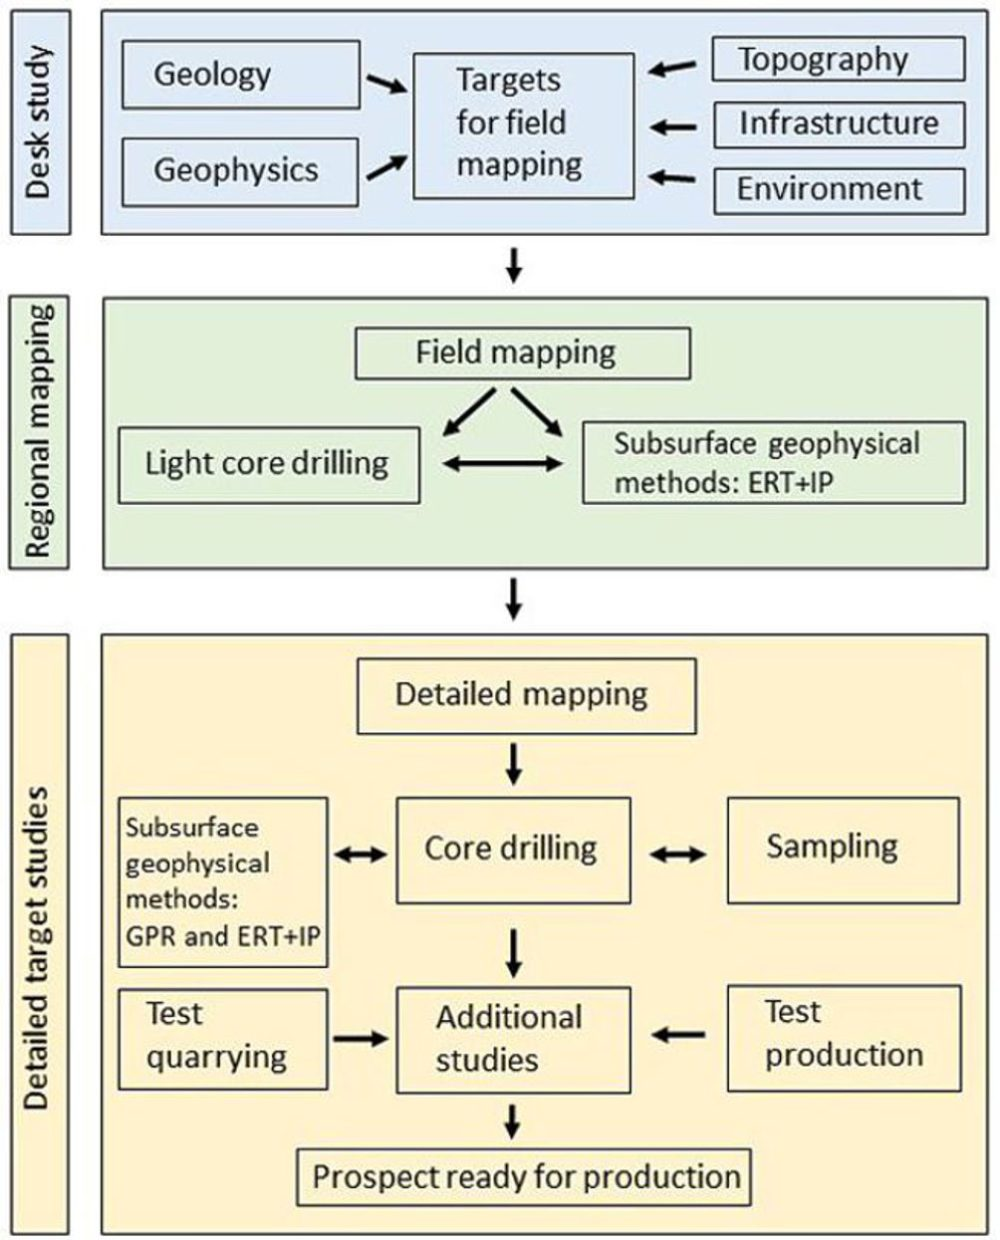 Figure 1. A revised exploration process for natural stone, especially applied to the rapakivi granites of the Wiborg batholith. ERT = Electrical resistivity tomography, IP = induced polarization, GPR = ground penetrating radar. Environmental aspects are omitted.